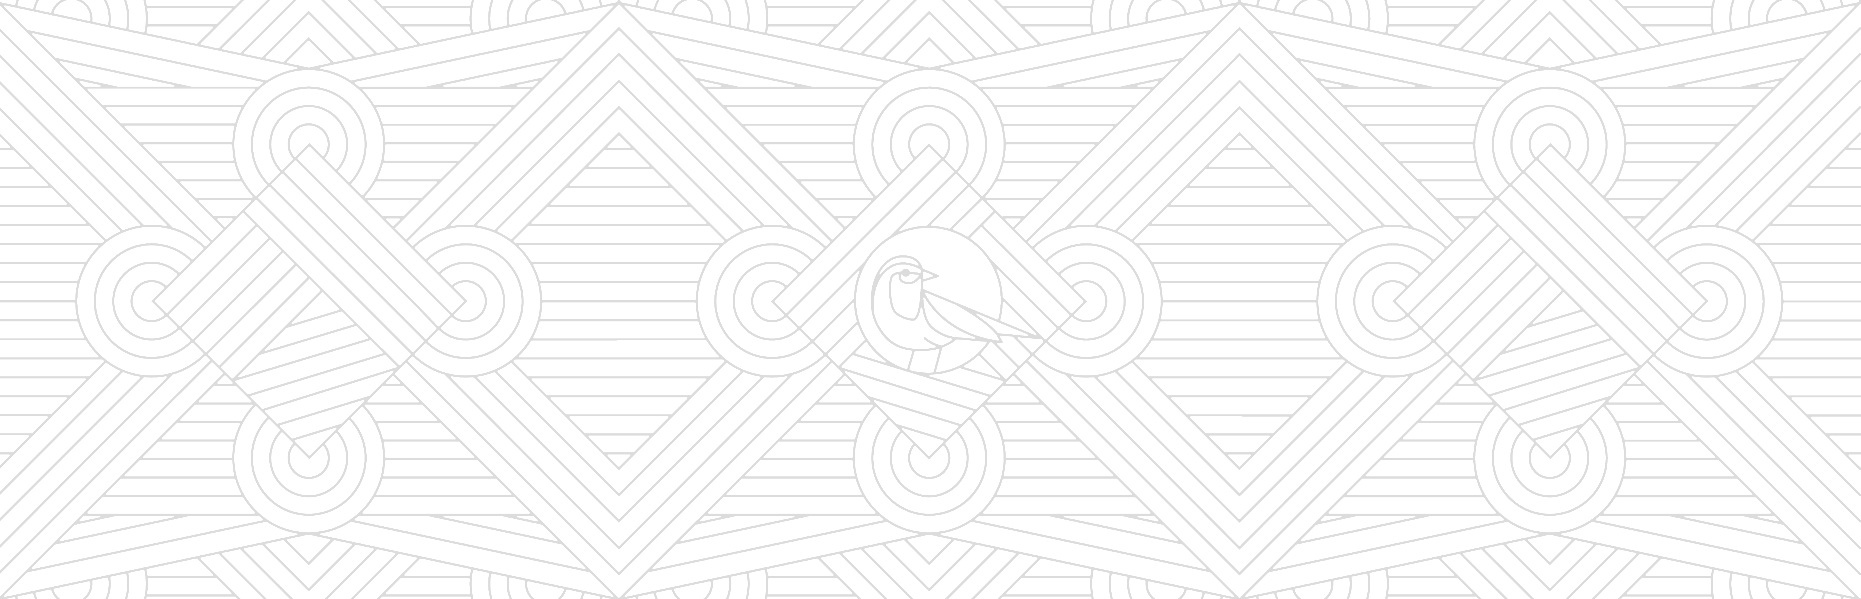 GreenJay-Pattern-01.jpg